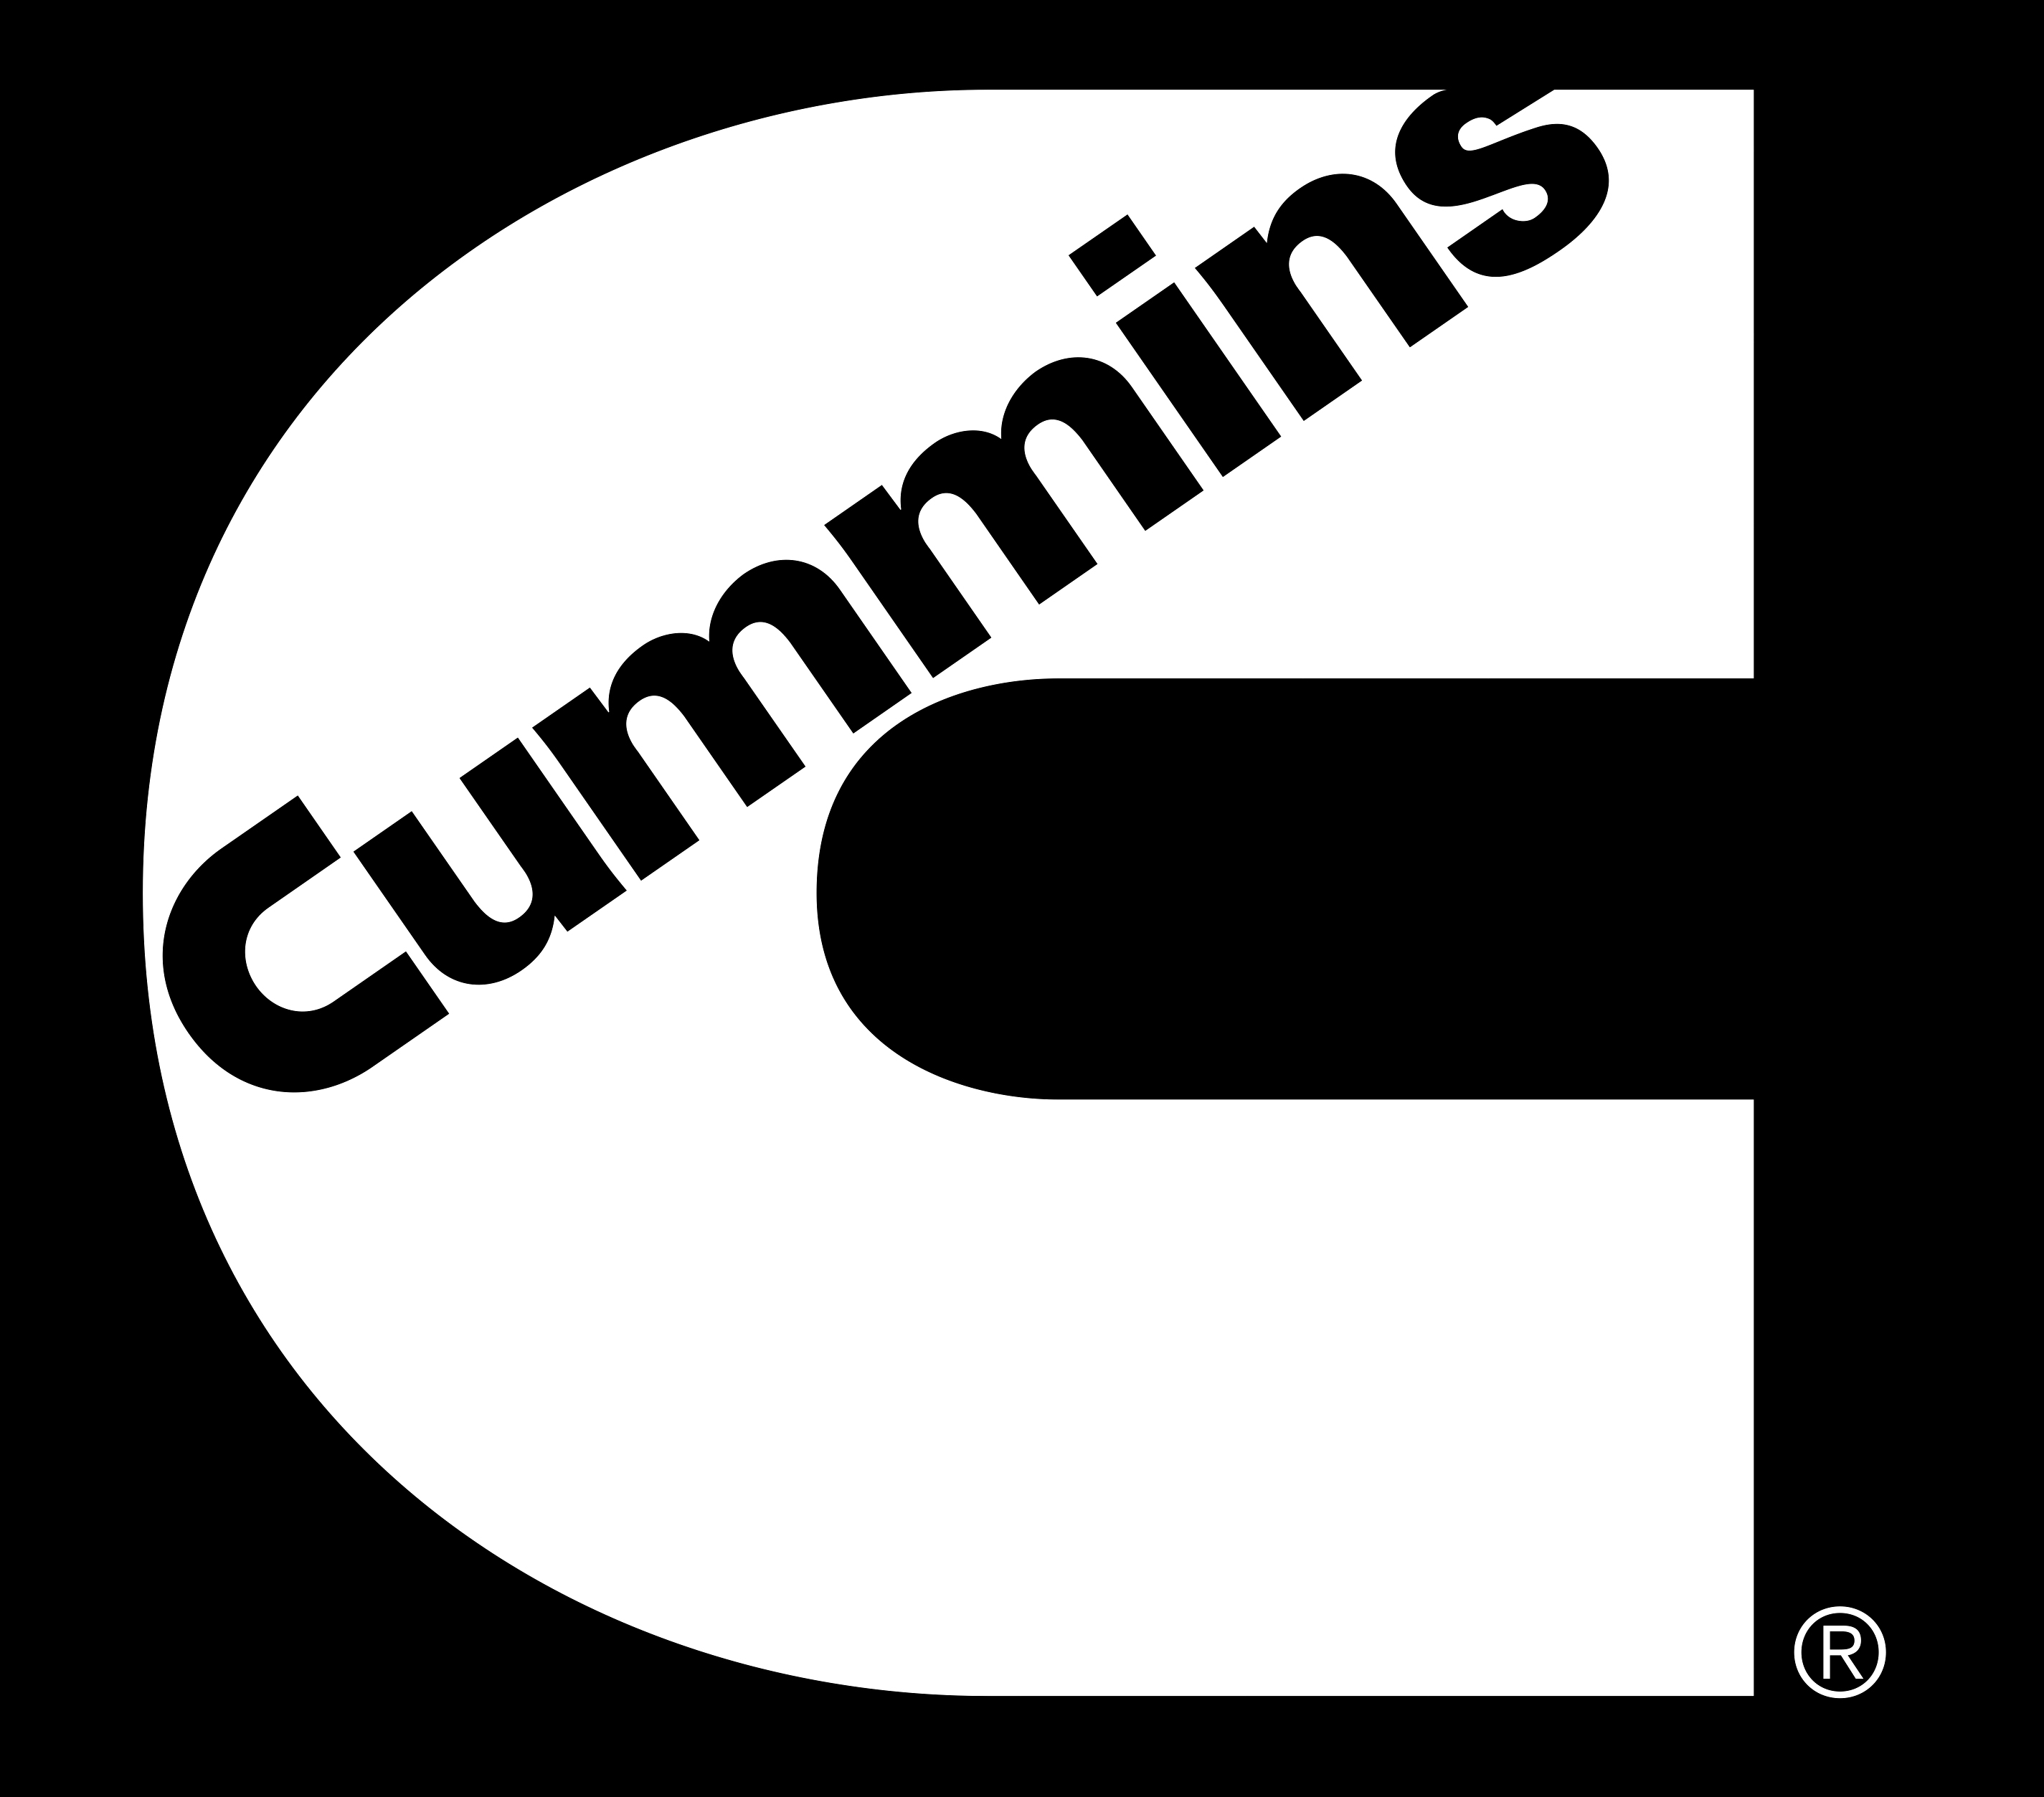 Cummins Logo And Symbol  Meaning  History  Png